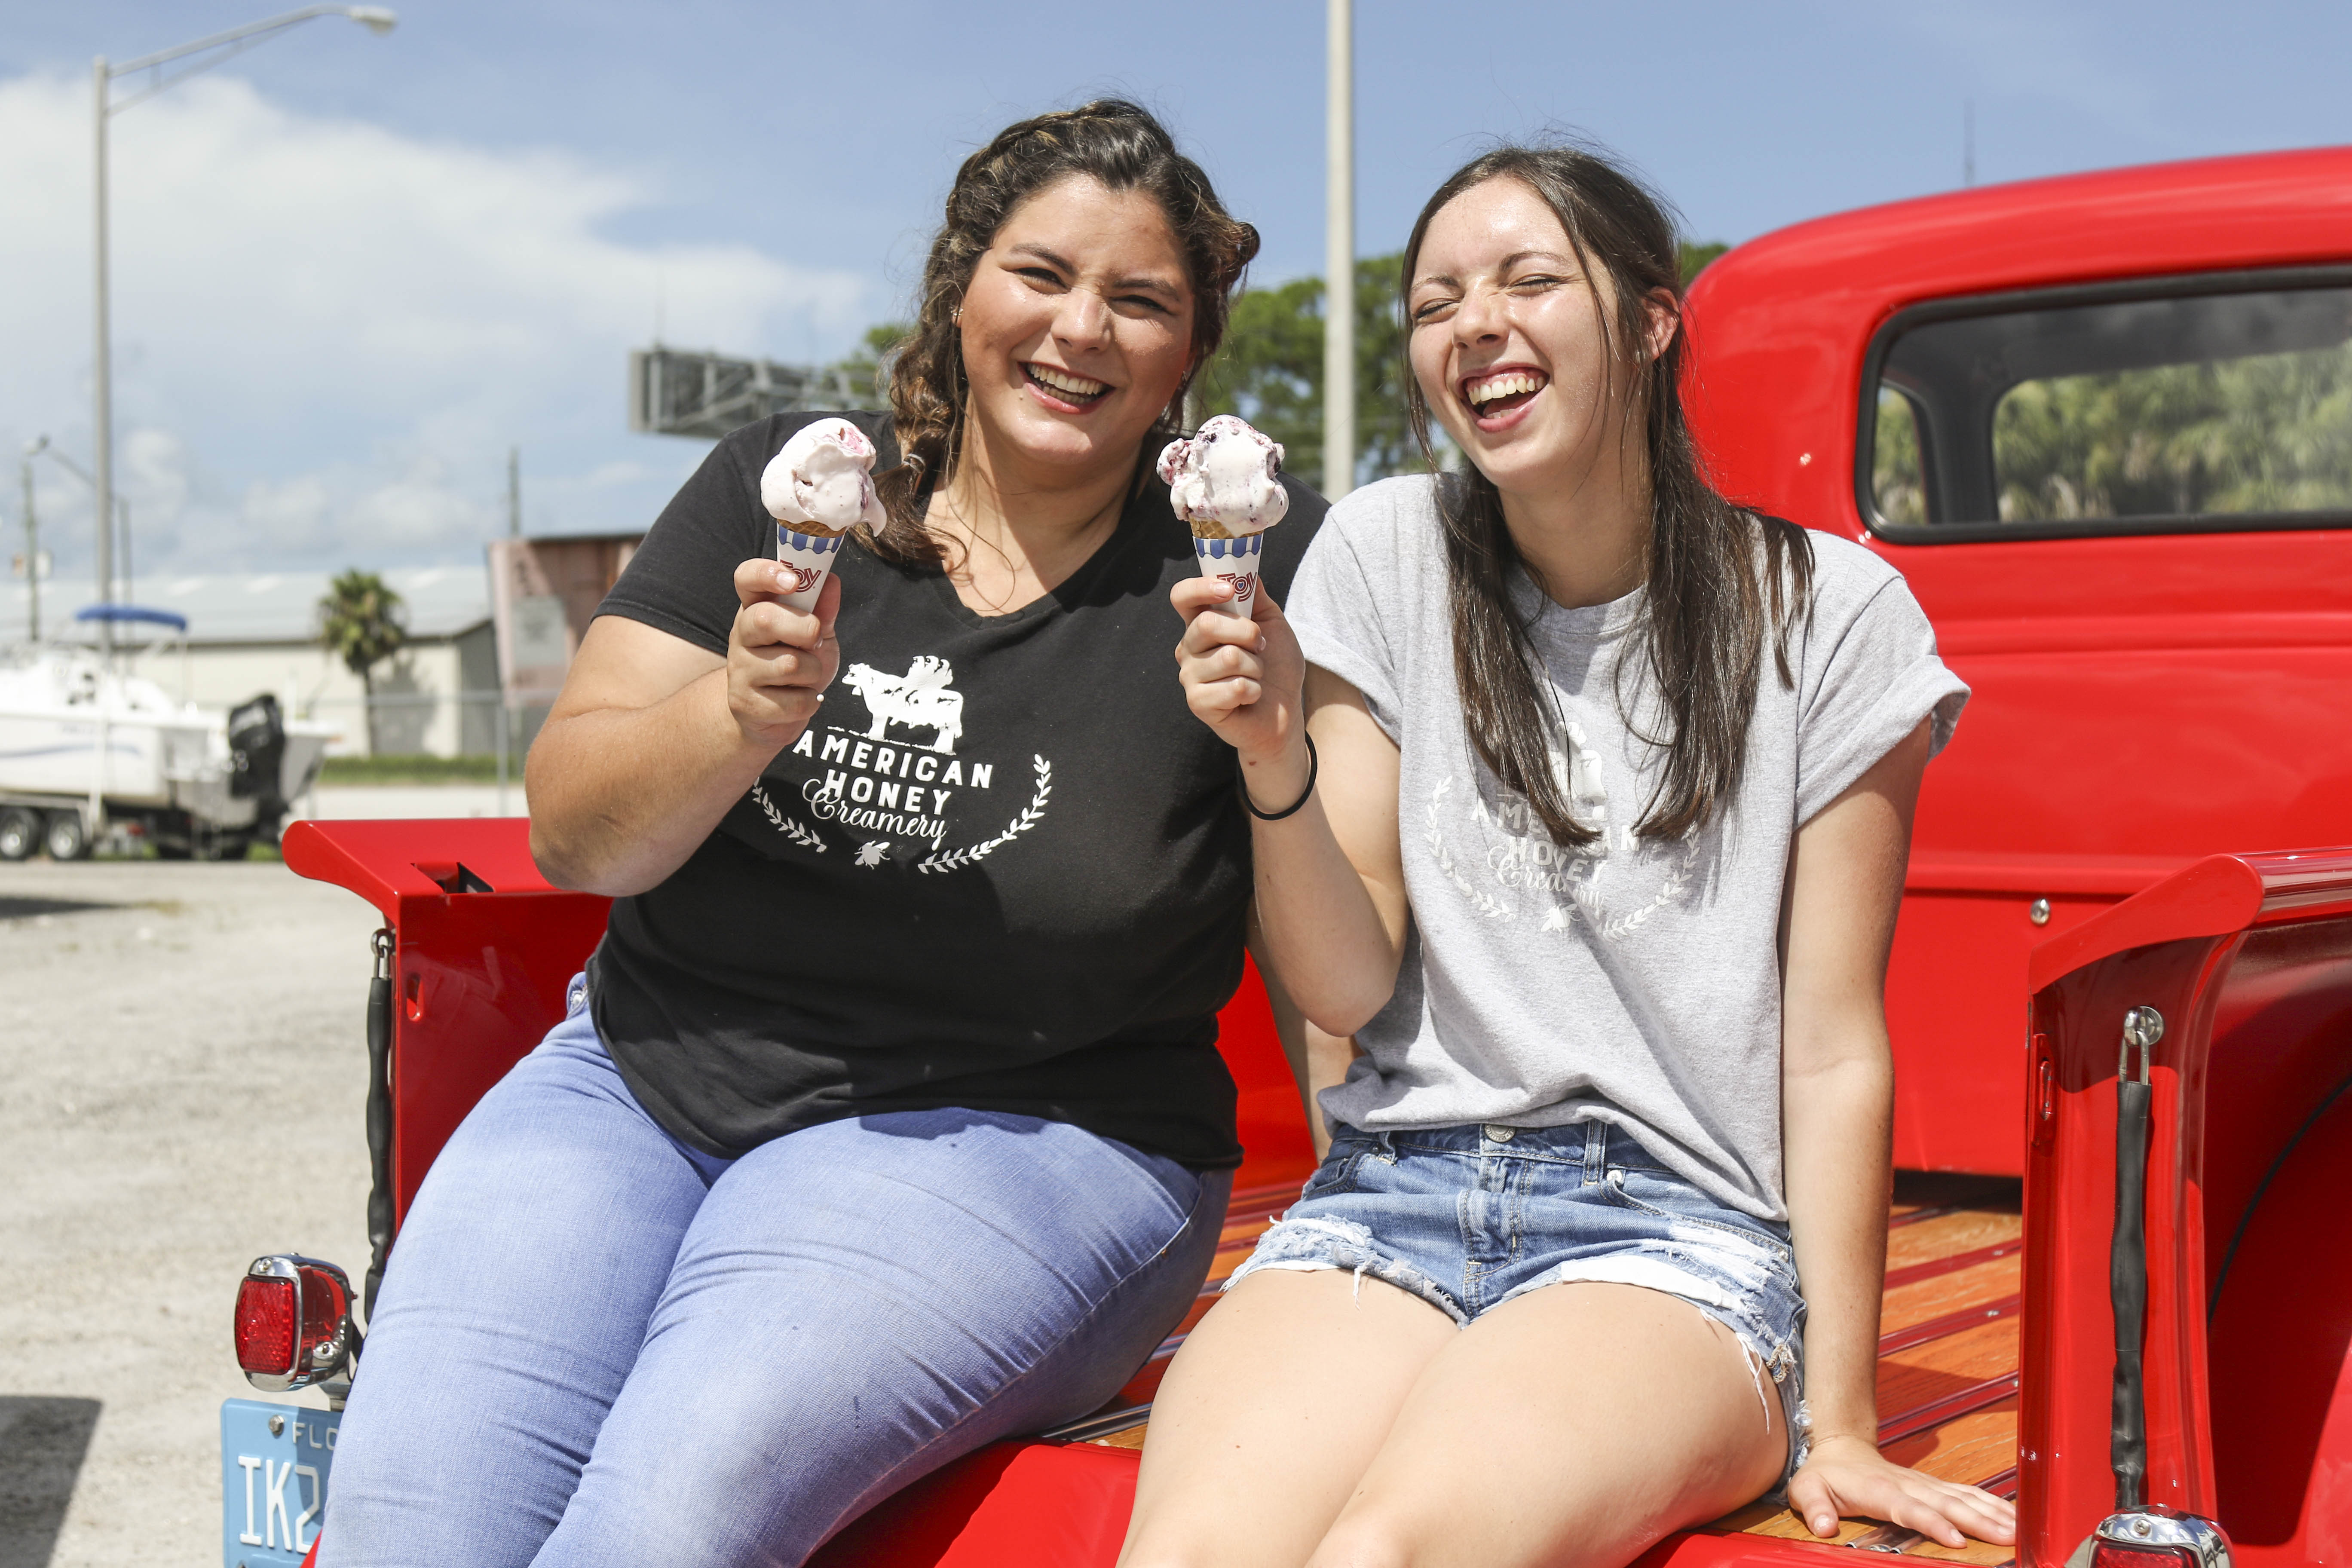 These sisters are serving up small-town charm and from